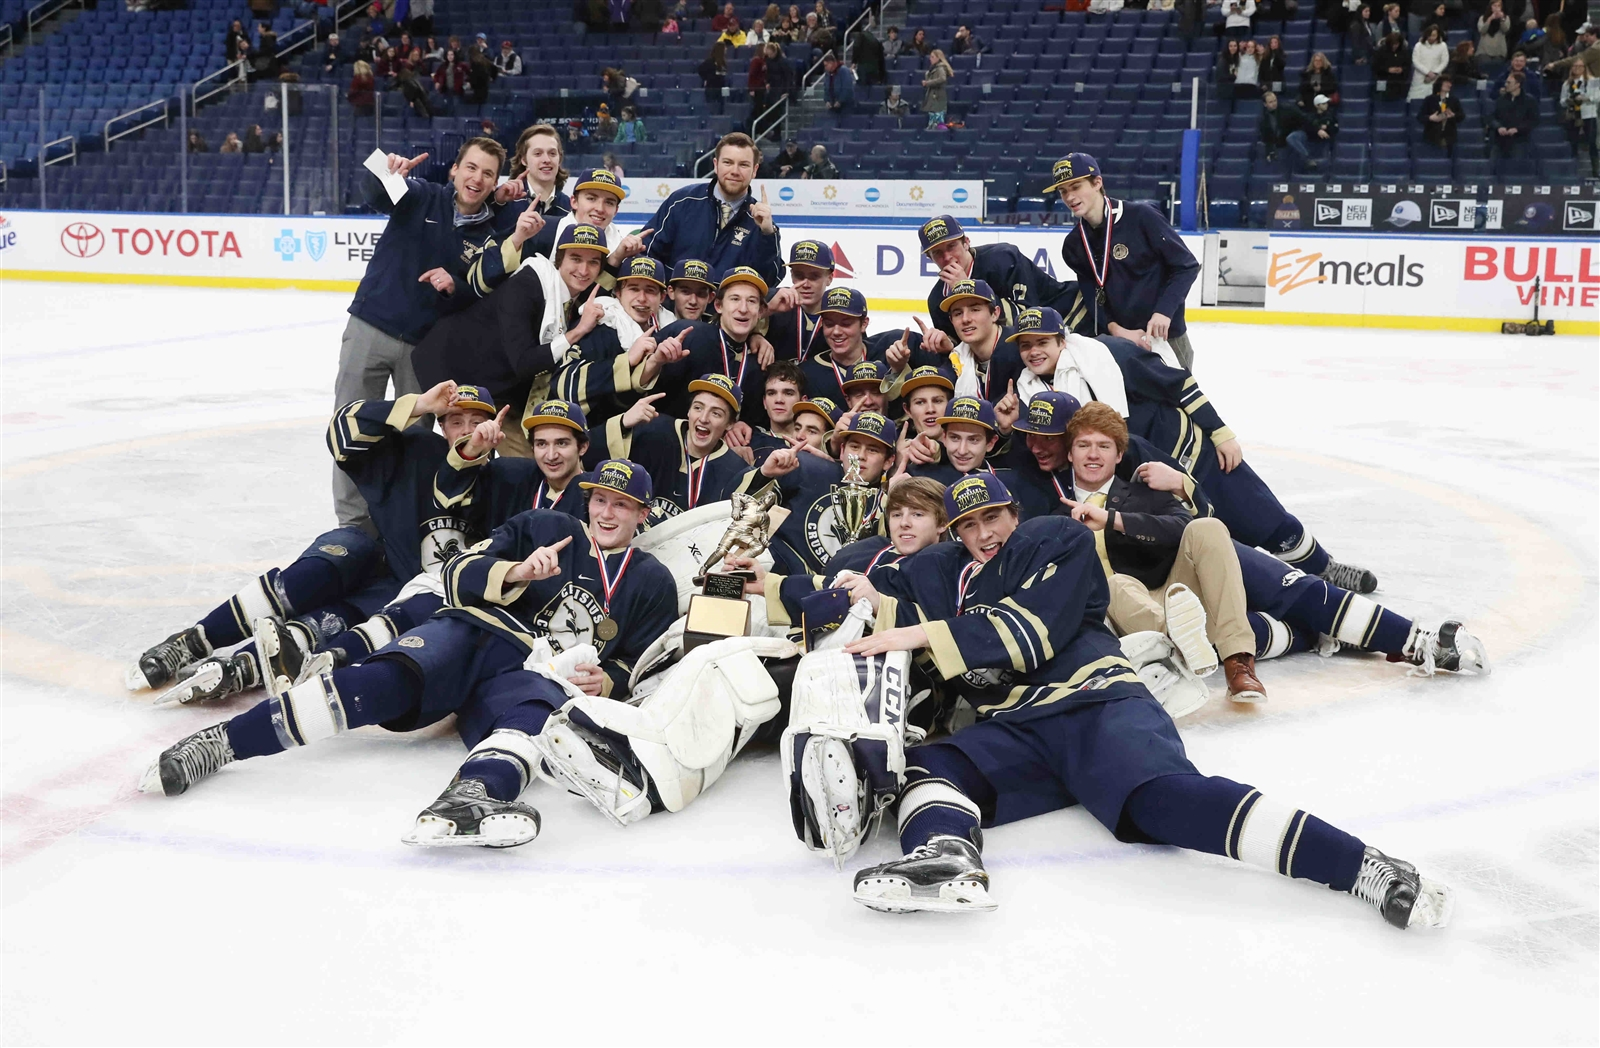 Canisius beats St. Joe's 2-1 in Super Sunday Large Division.